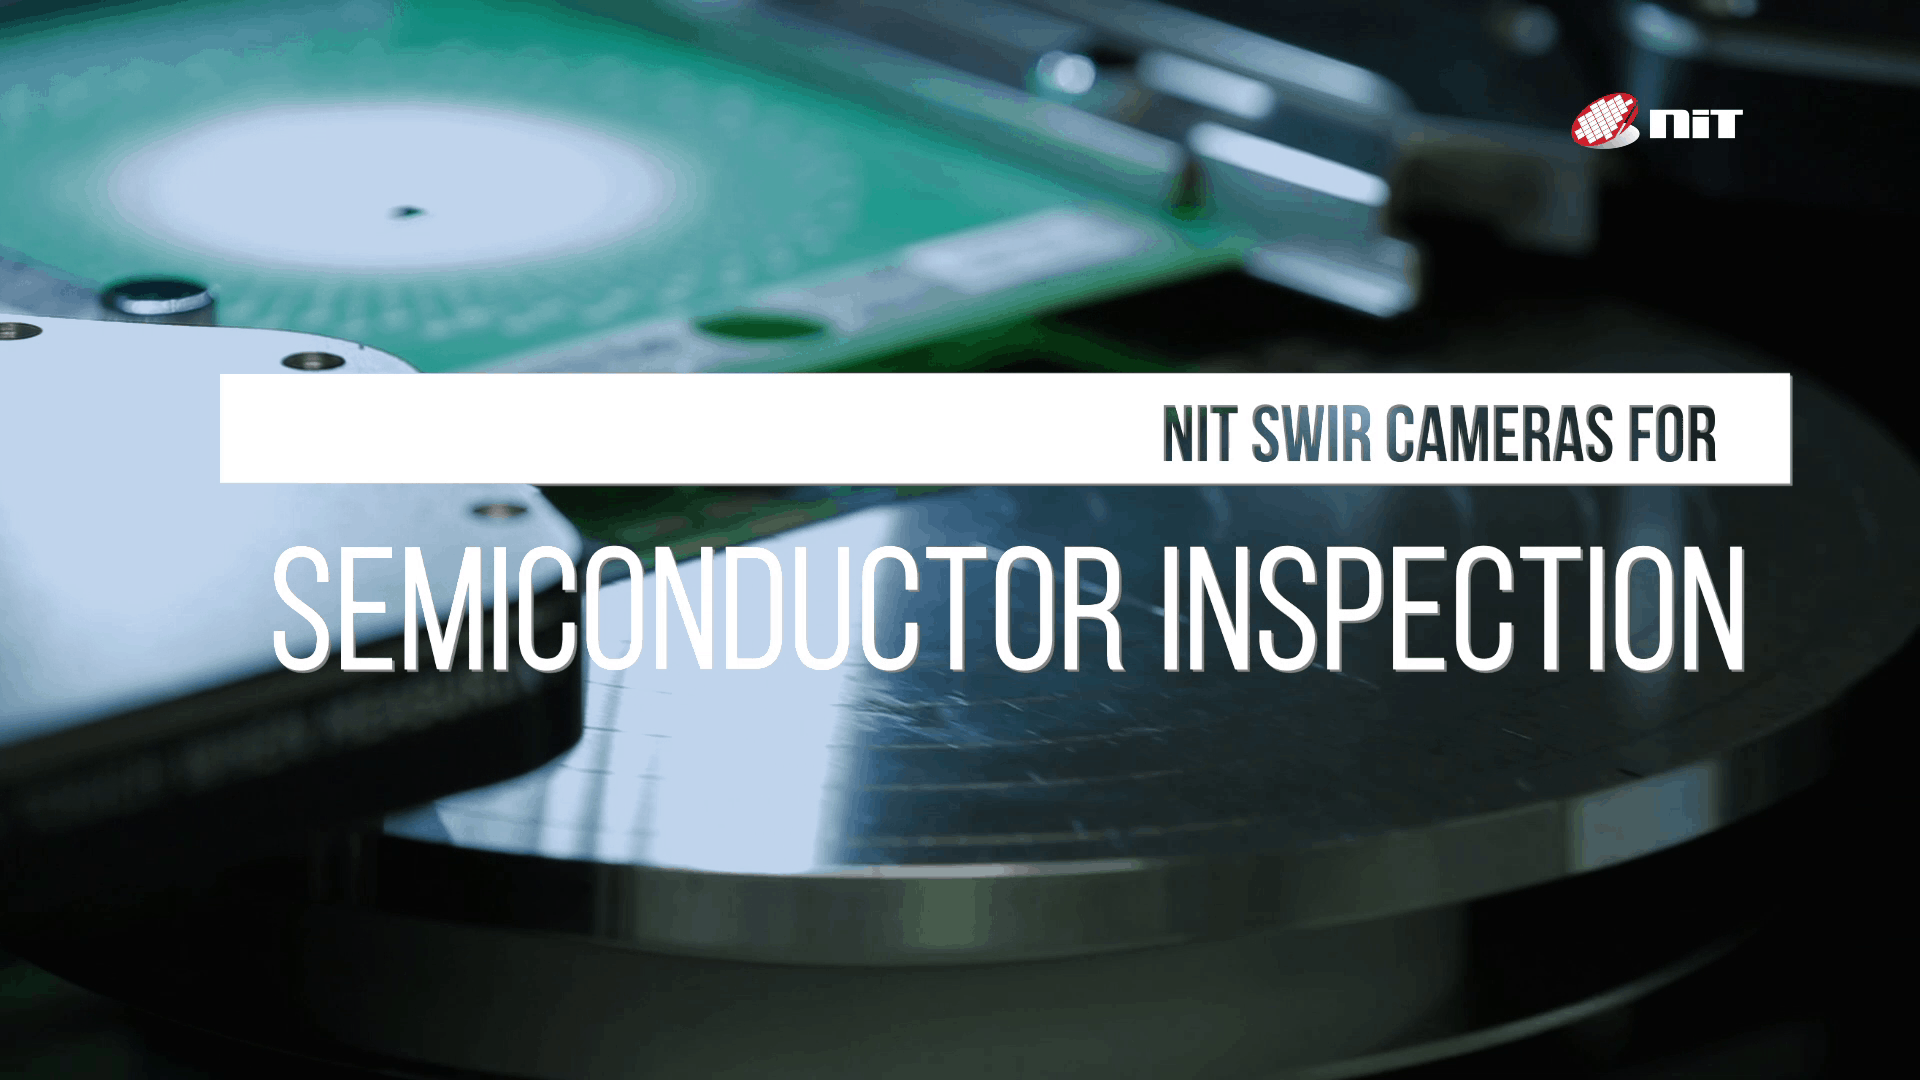 nit-swir-cameras-for-semiconductor-inspection-thumbnail